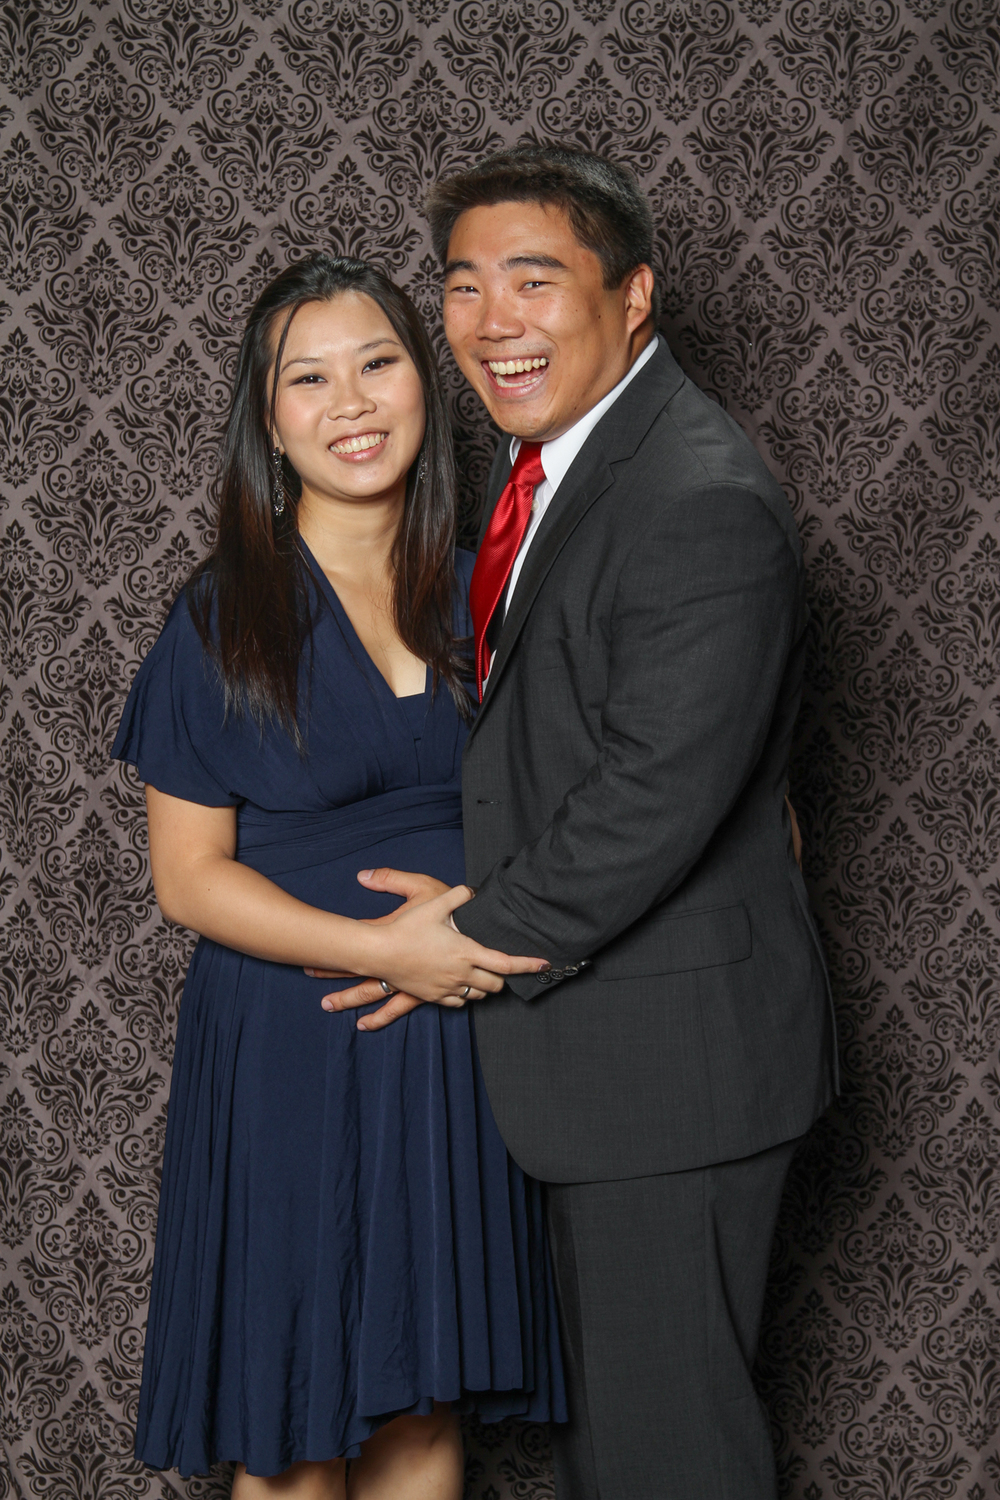 130907_4EyesWeddingBooth-097.jpg